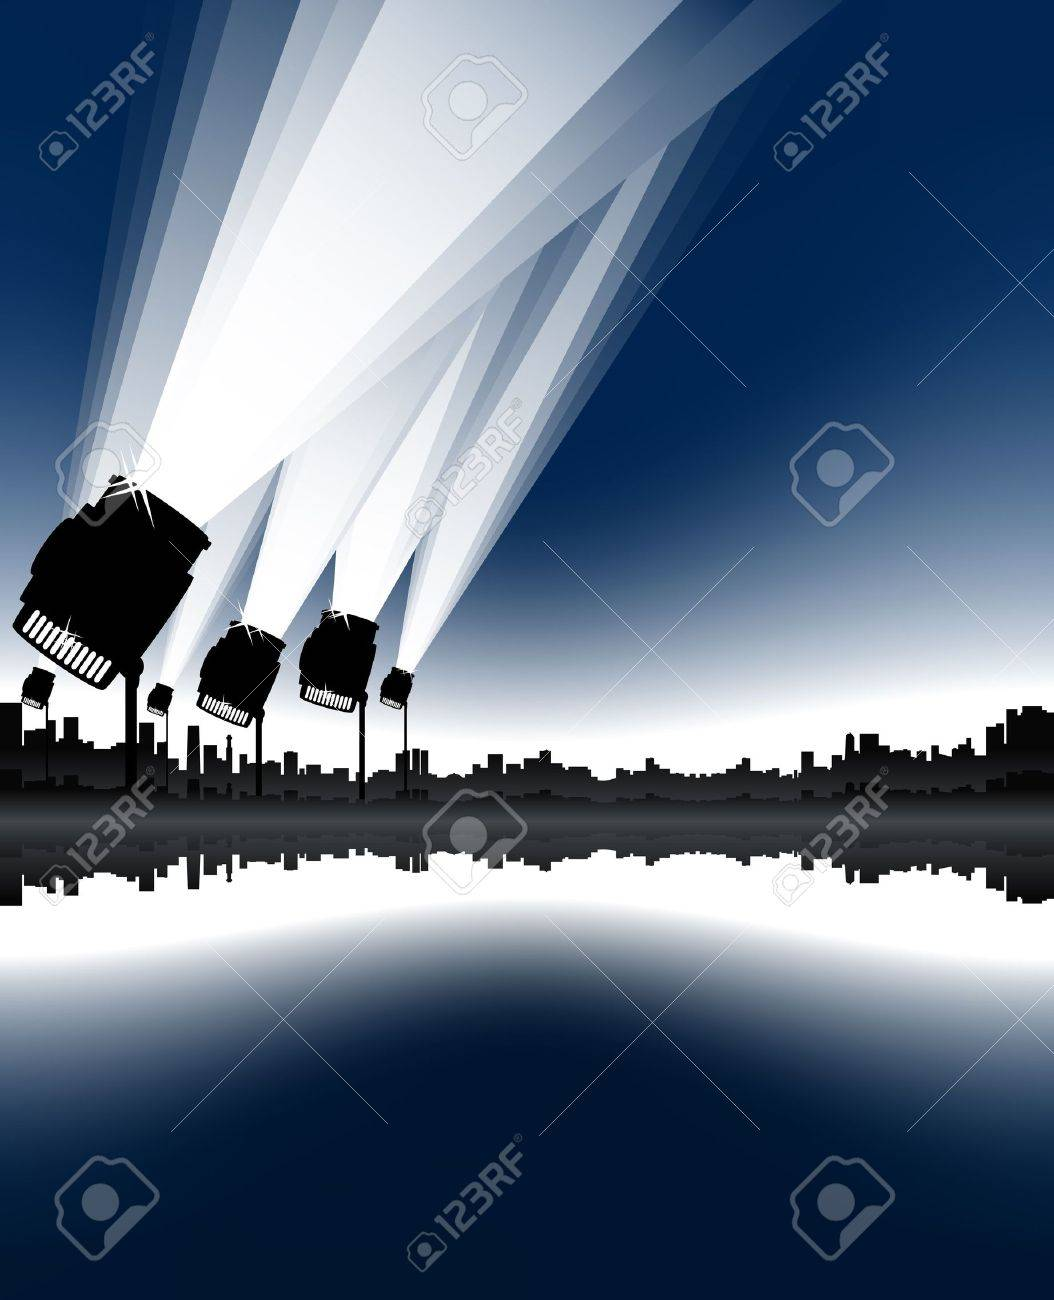 Vector illustration of an urban cityscape and skyline with sea bay and spotlights in the sky. - 3471187